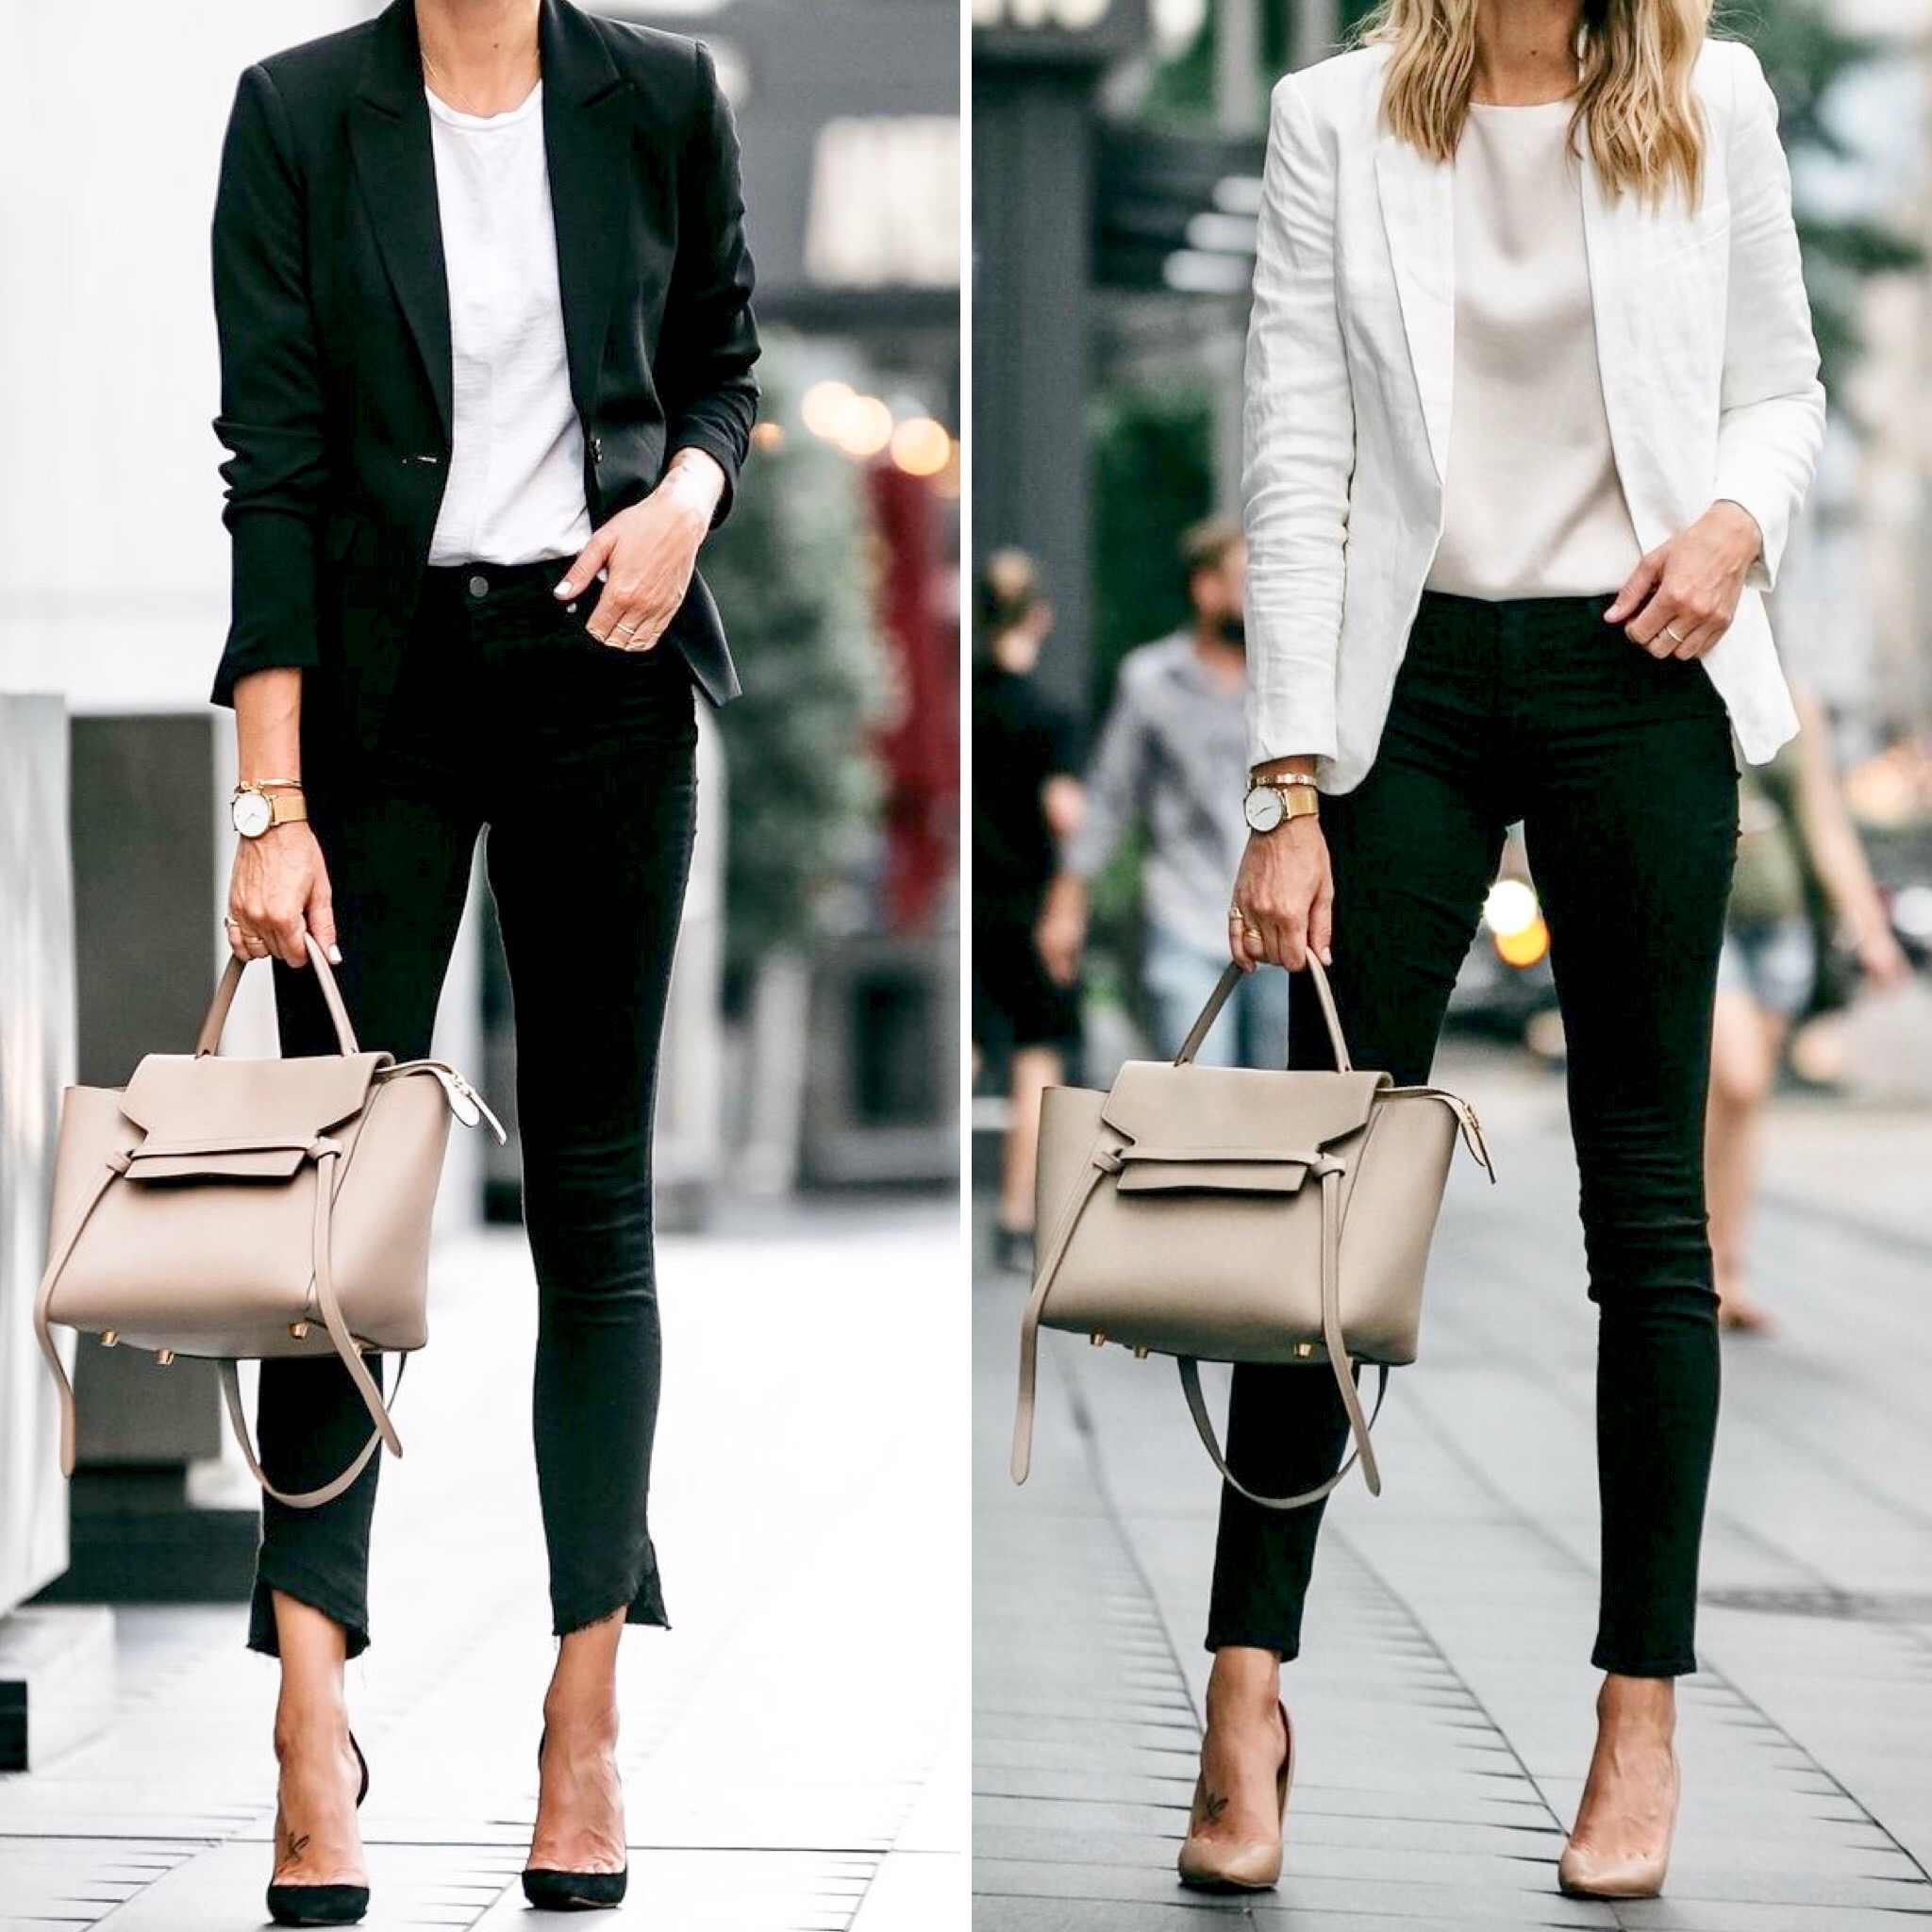 black vs white blazer.jpg